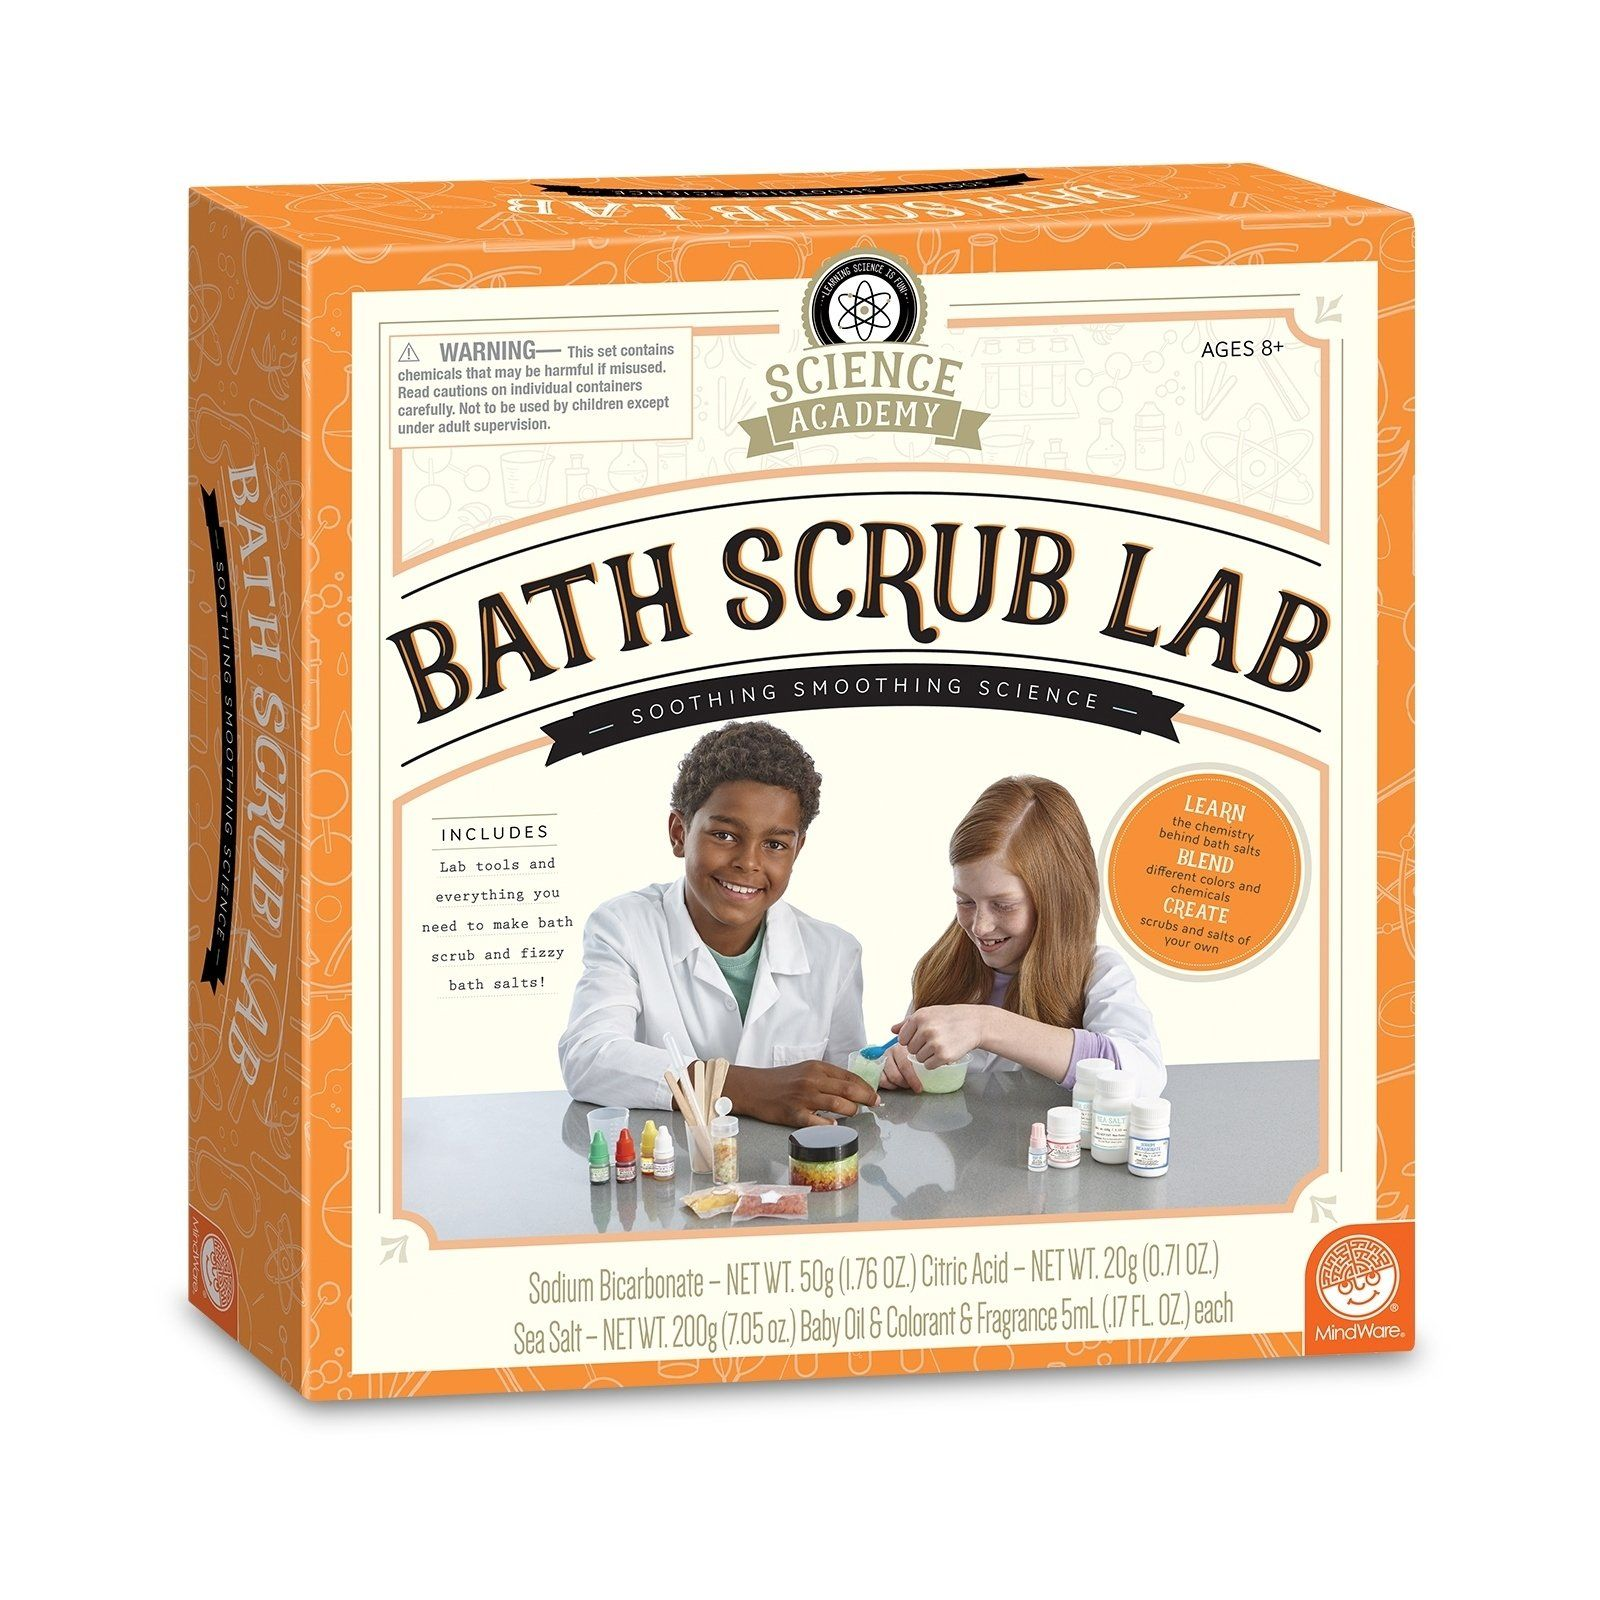 MindWare Bath Bomb Lab Science Learning Create Your Own Bath Bombs